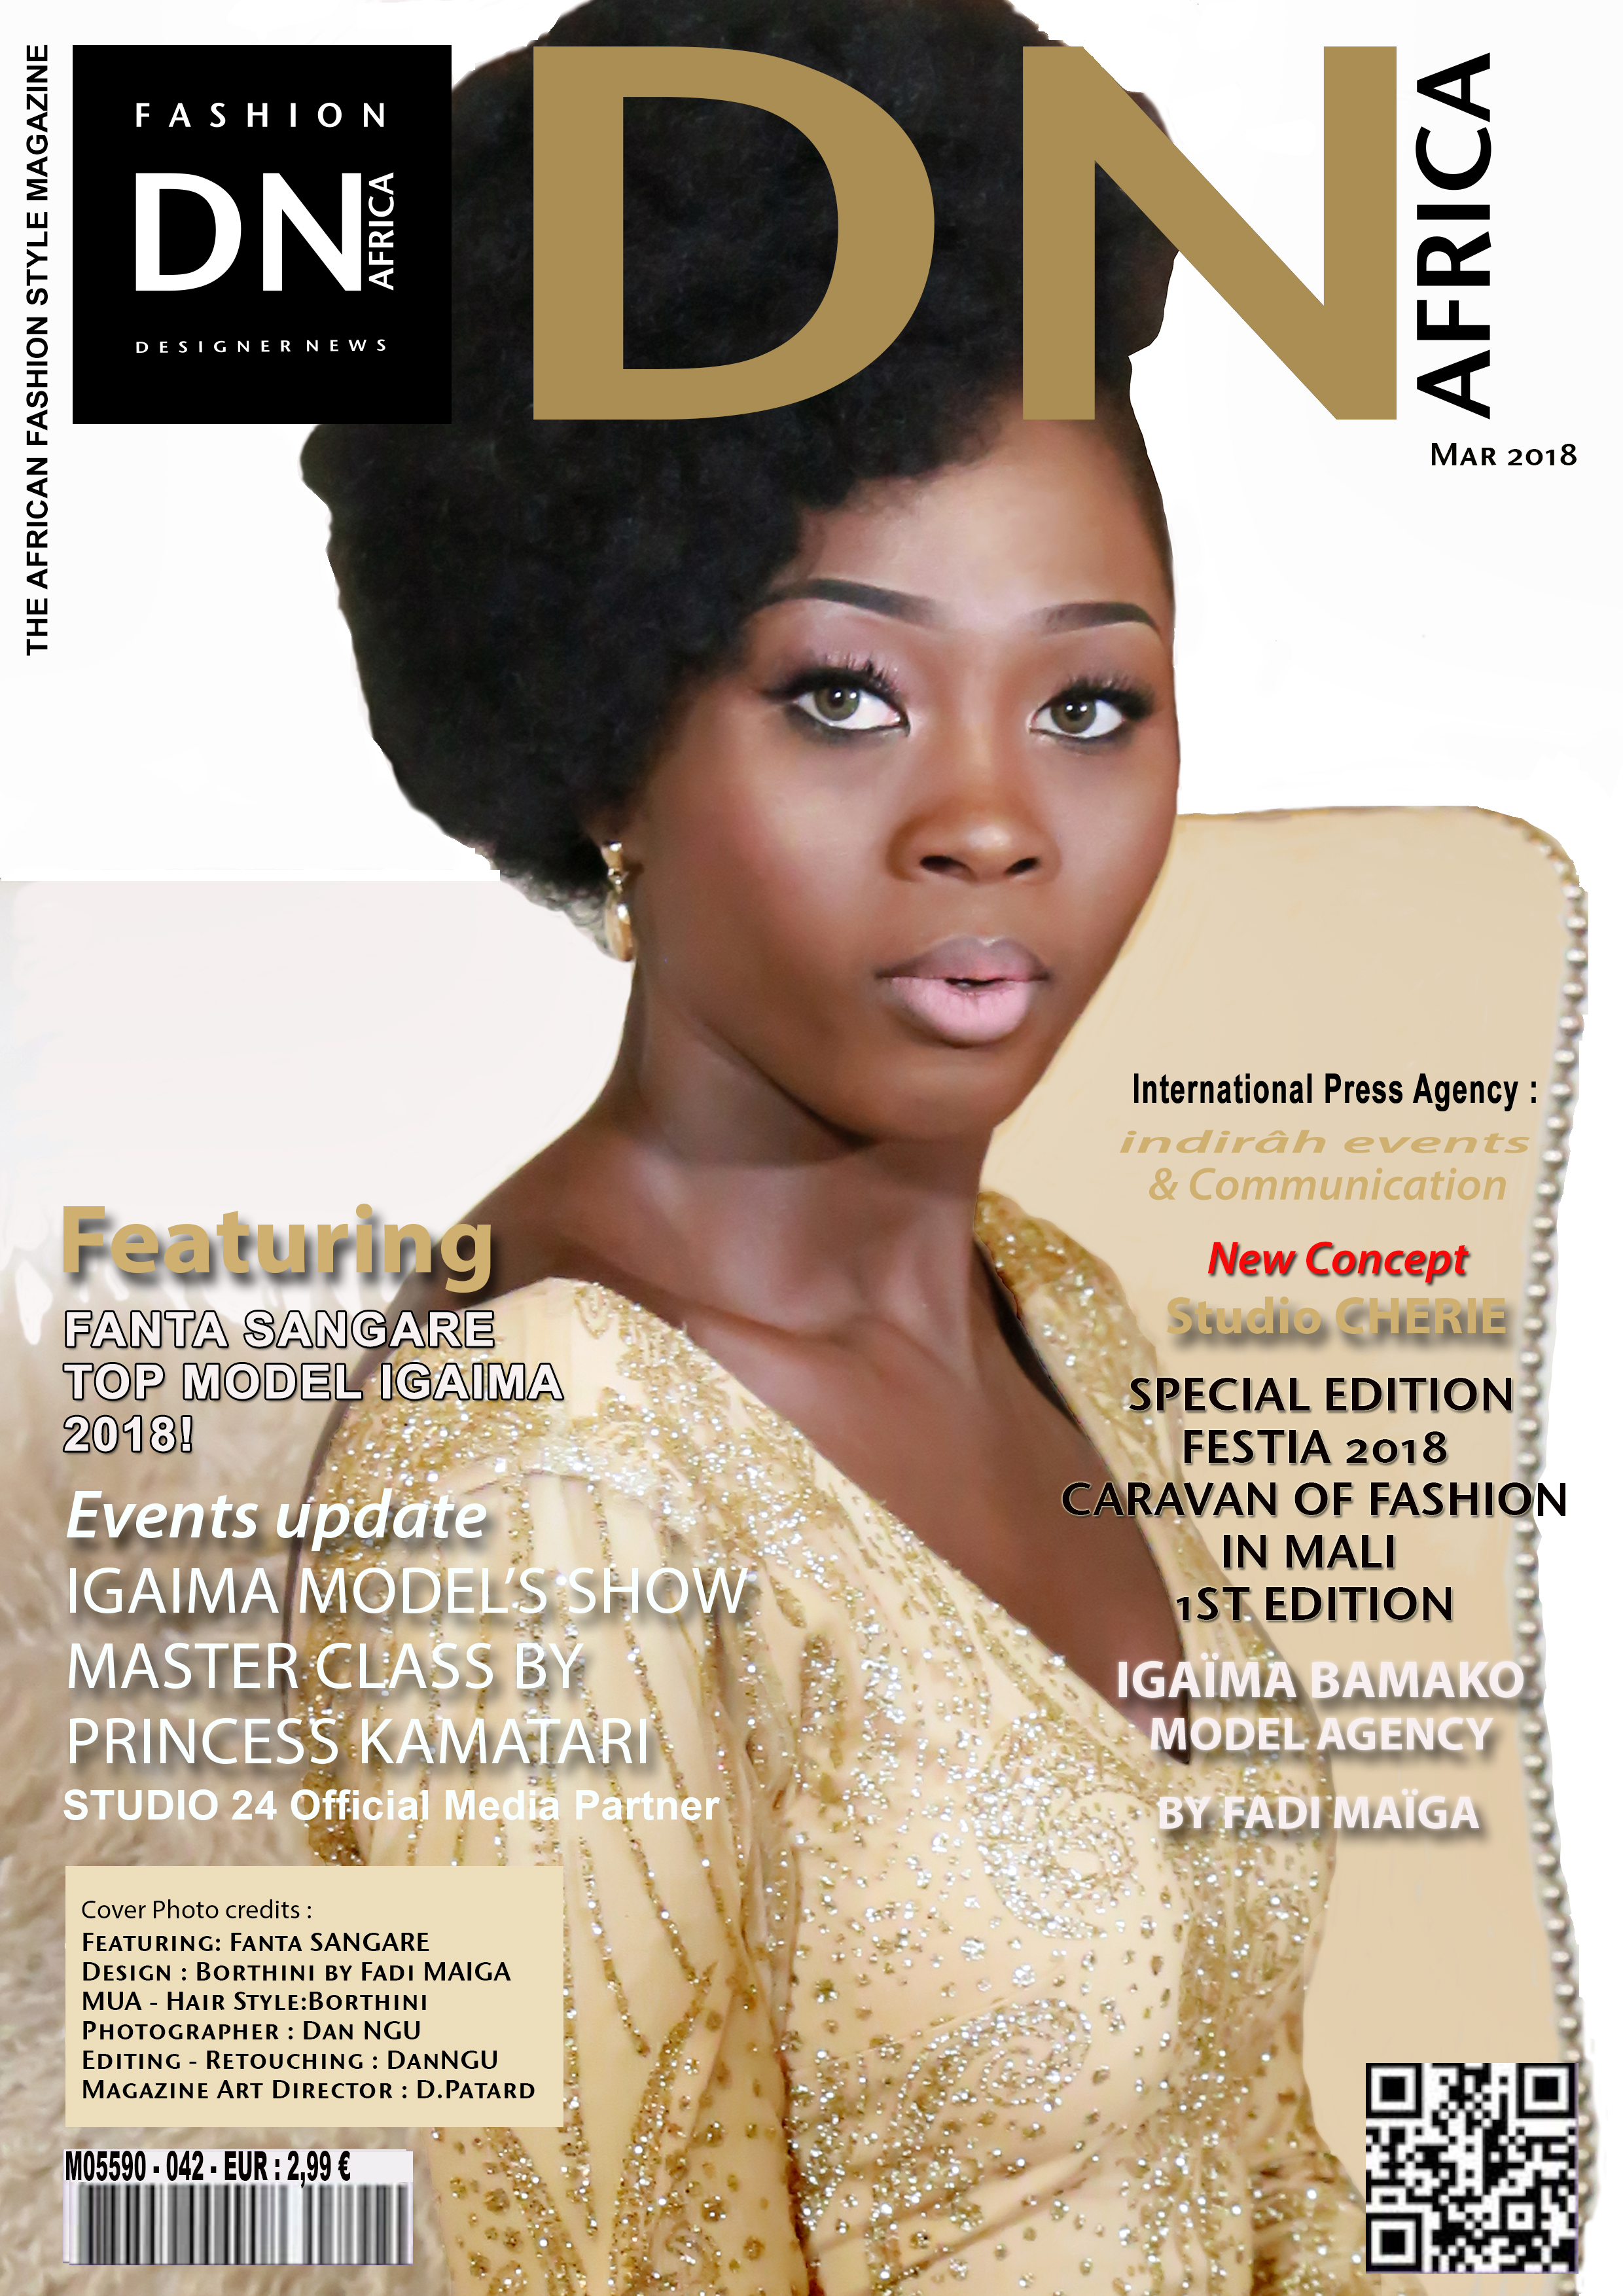 DNAFRICA-Cover-MAR 2018 Mag Number 42 Fanta Sangare - Designer Fadi MAIGA - Media Partner DN MAG, DN AFRICA -STUDIO 24 NIGERIA - STUDIO 24 INTERNATIONAL - DN MAG - Indirâh Events & Communication